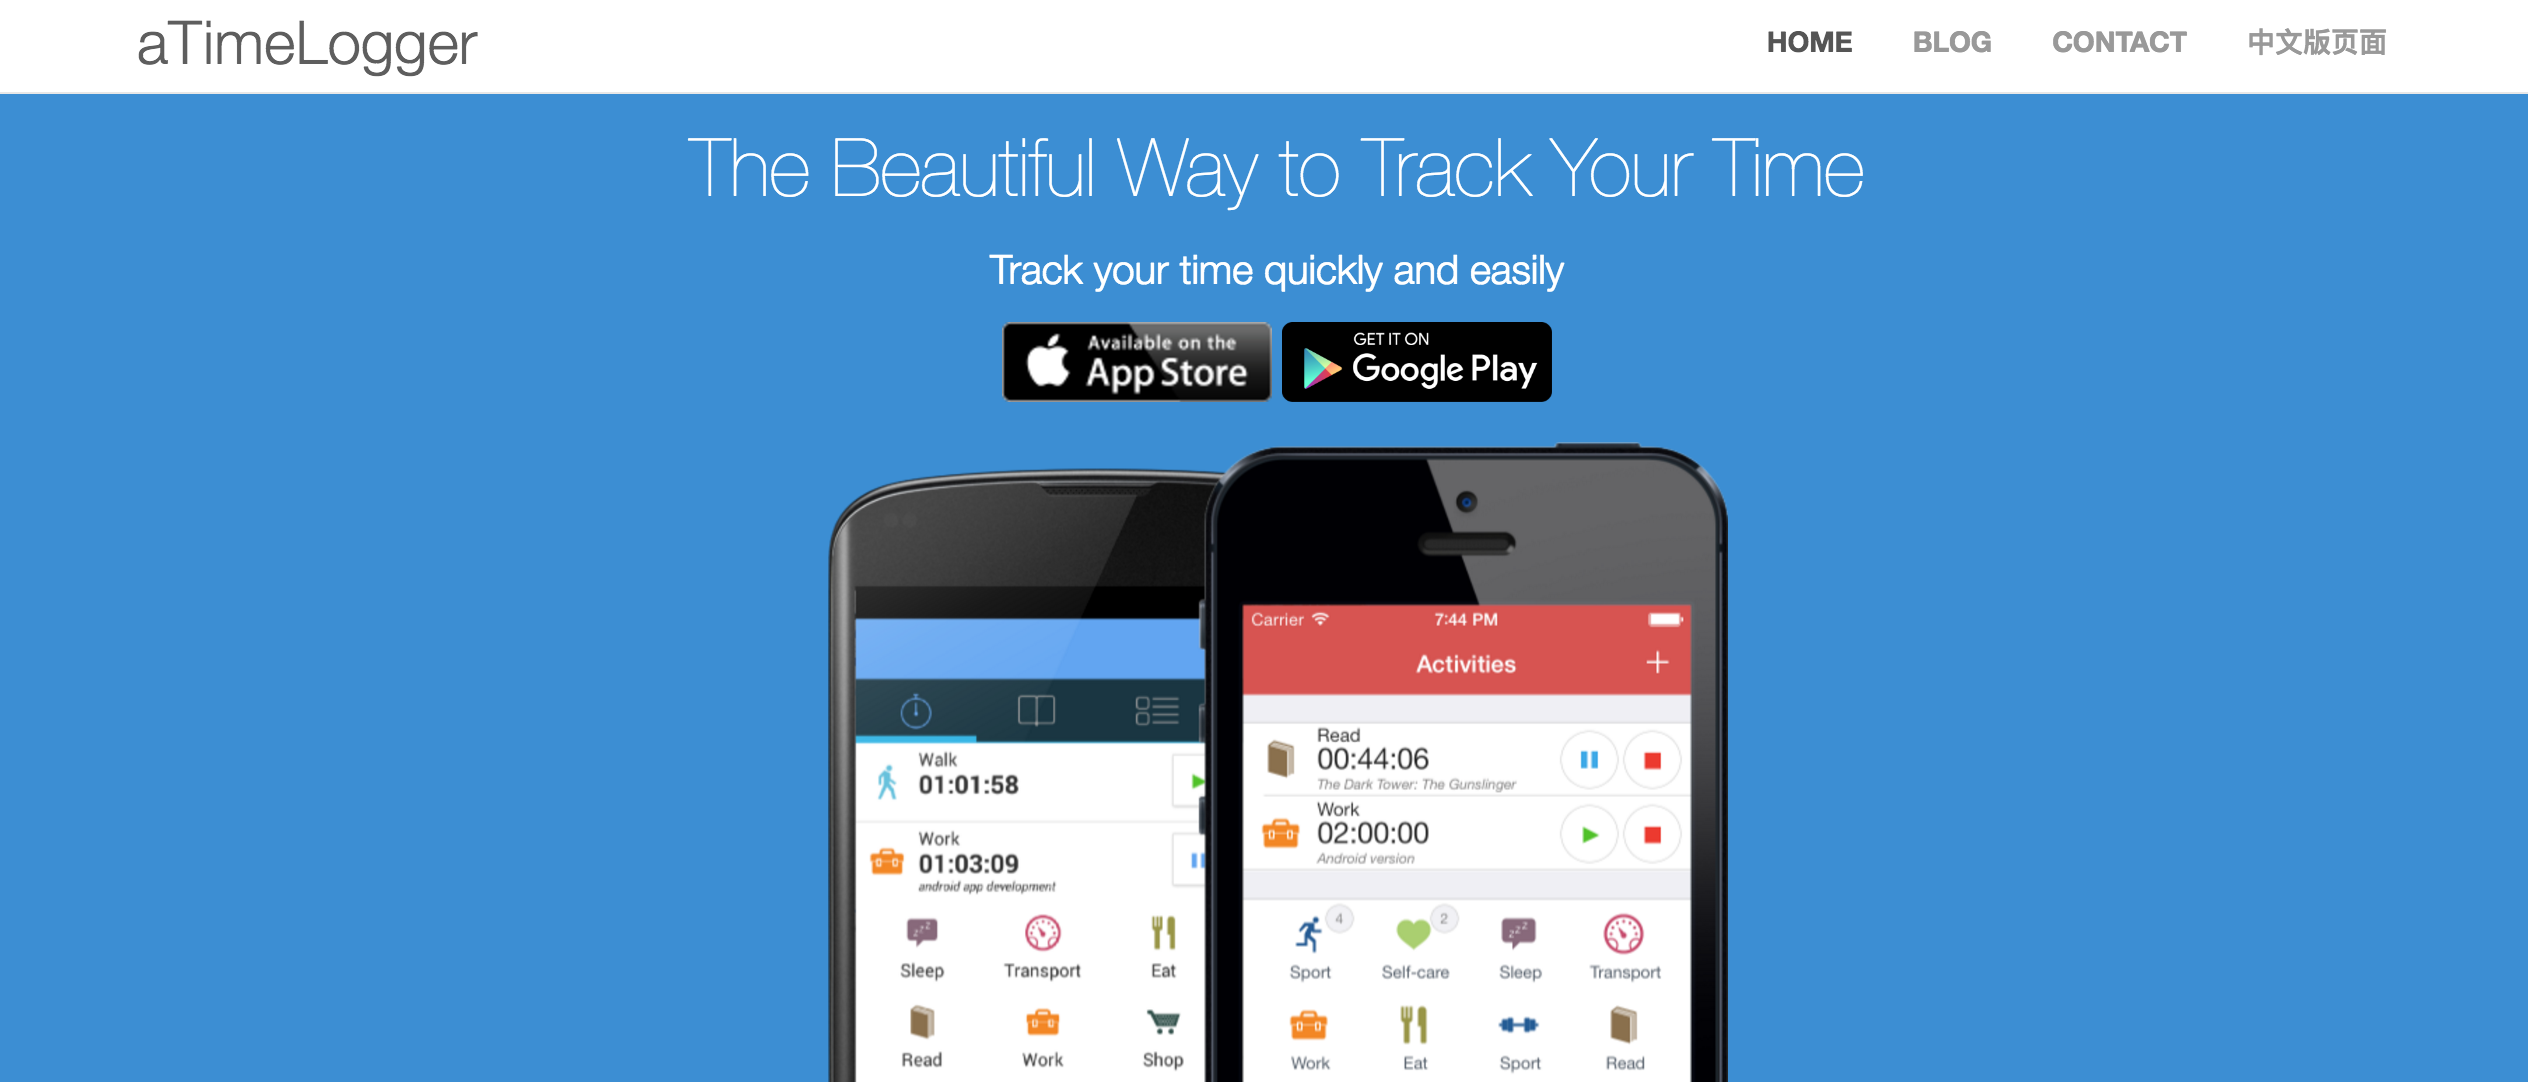 the best time tracking app for android: 10 tools compared, Invoice templates